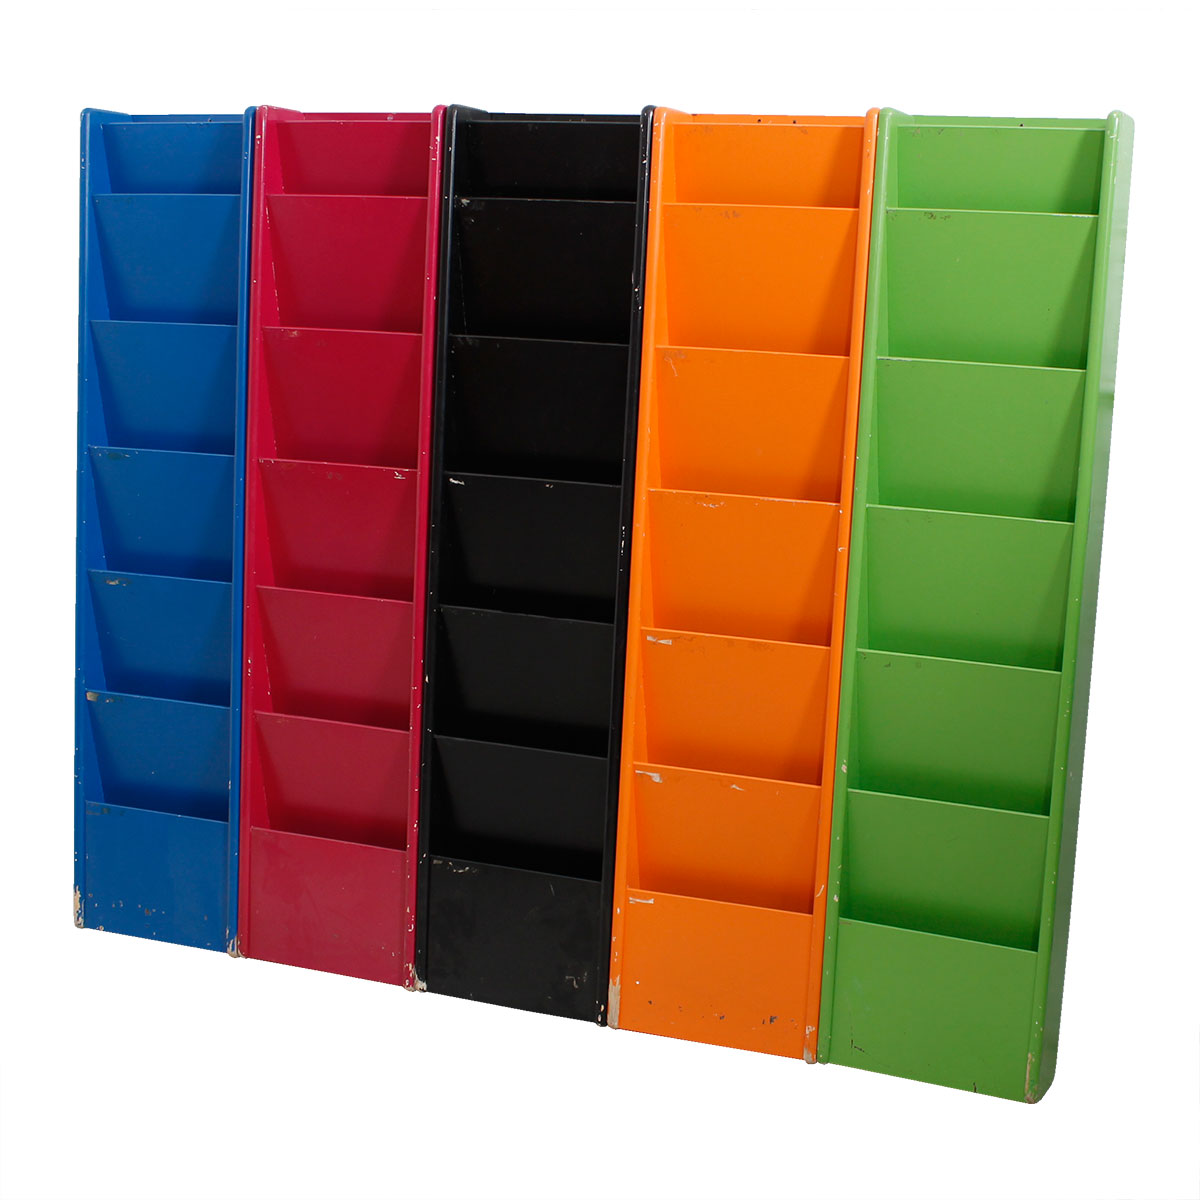 Set of 5 Multicolored Tall Hanging Magazine / File Organizers